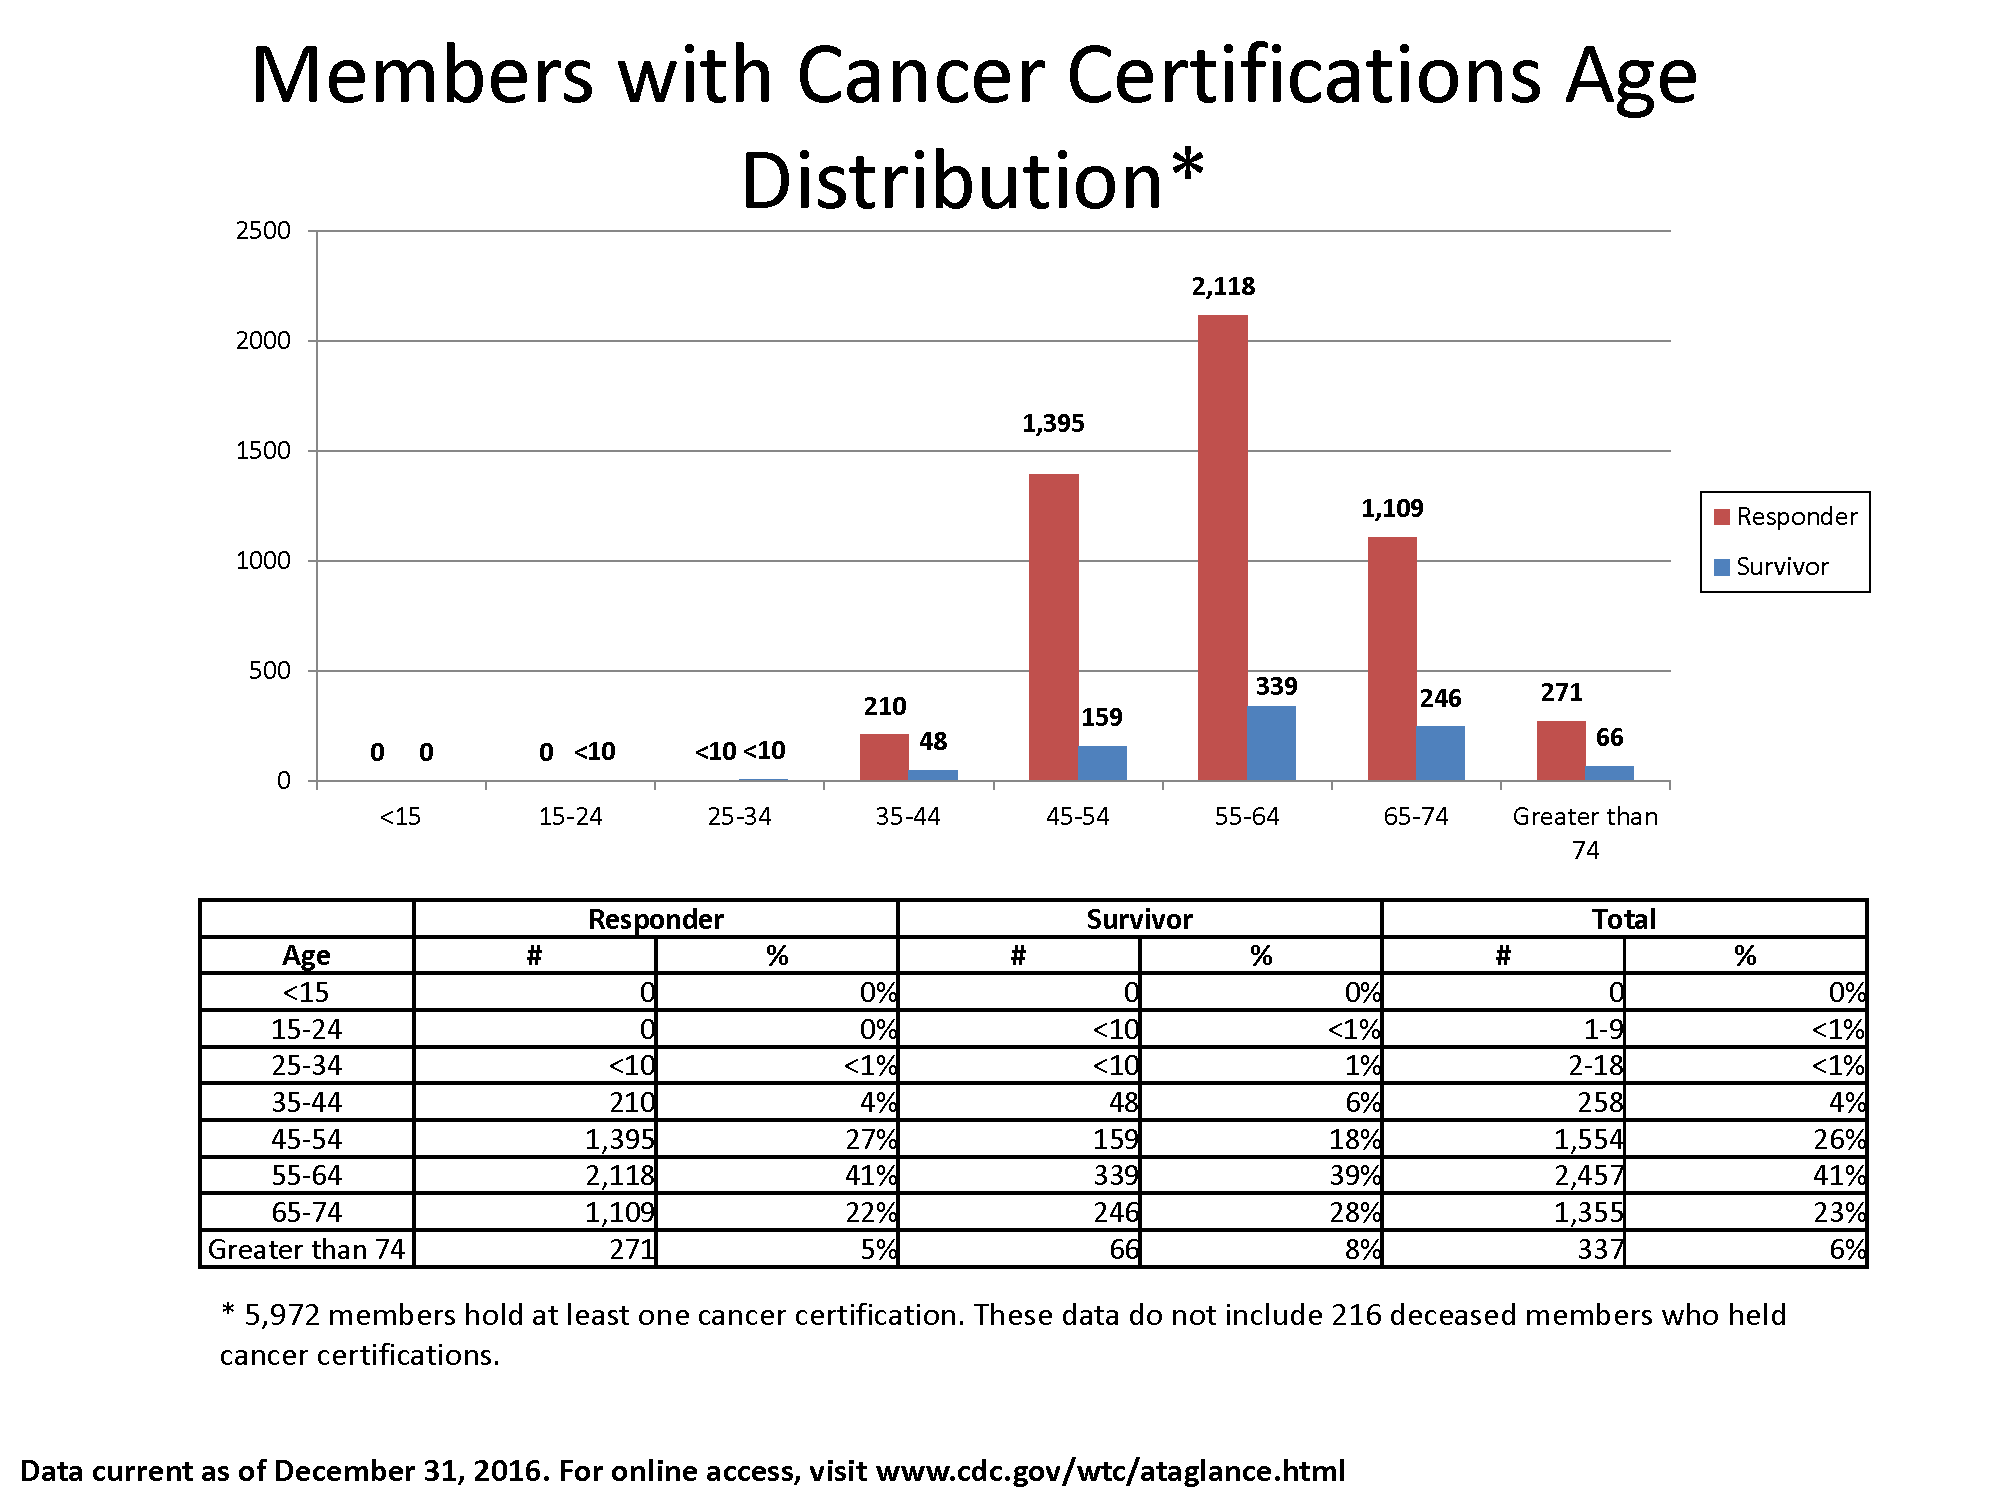 Bar chart of data in the table showing the number of members with cancer certifications by Responder and Survivor and age bracket.